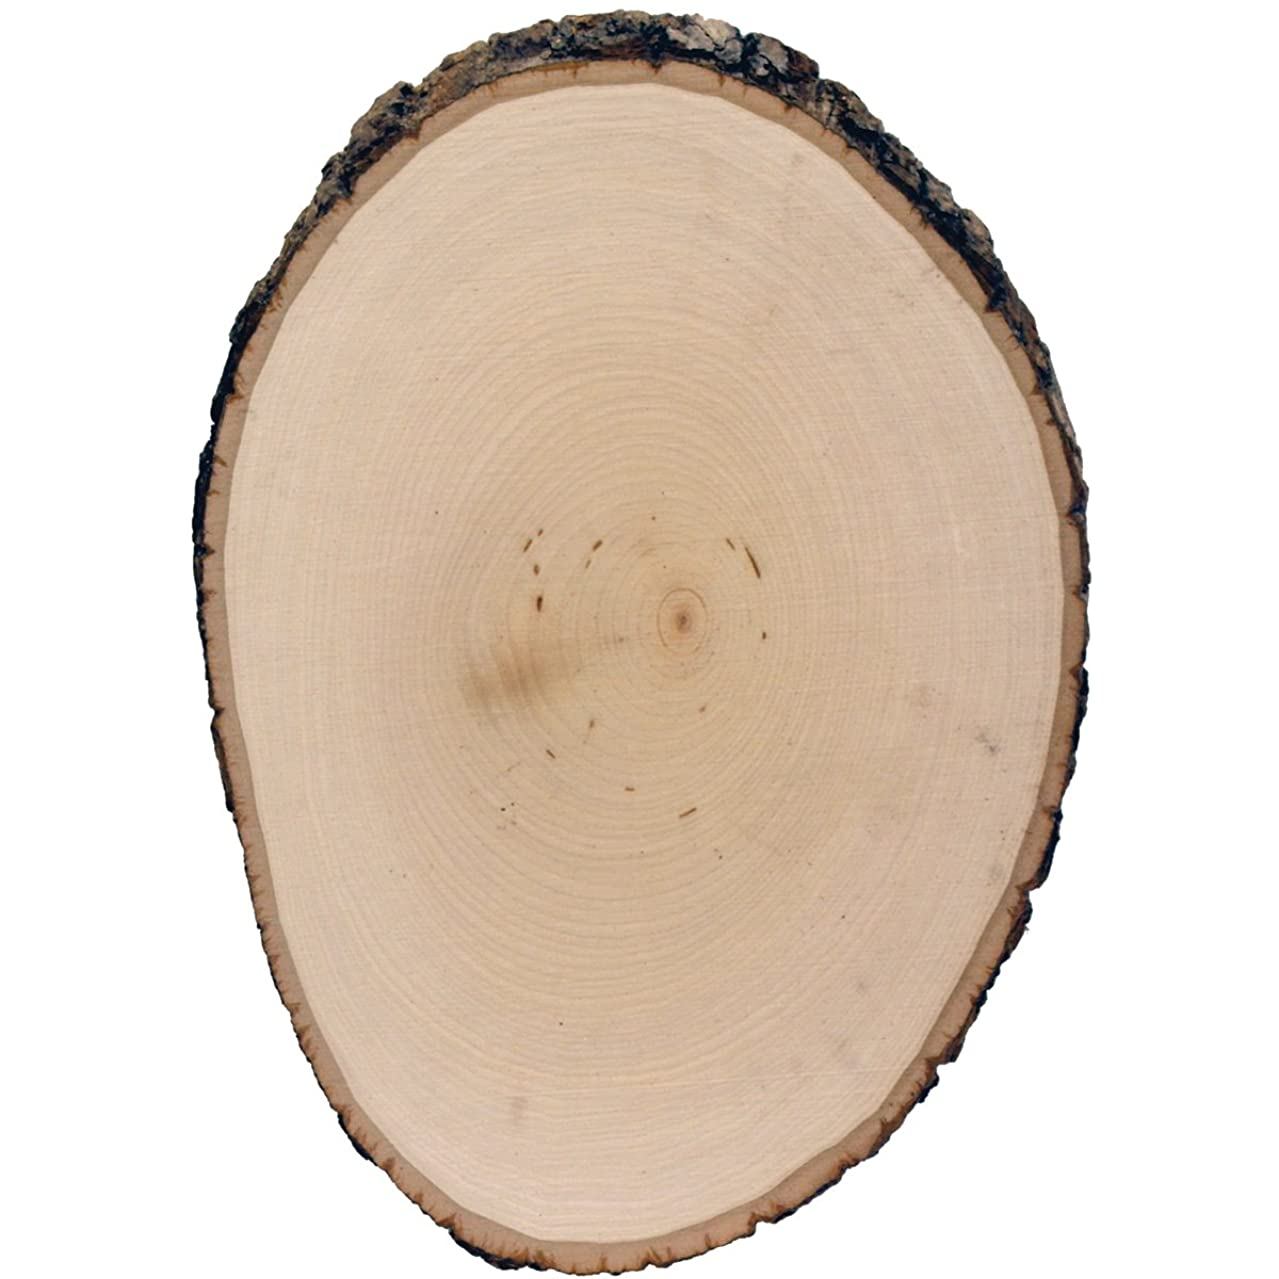 Walnut Hollow 5509 Basswood Country Round Plaque 8.5